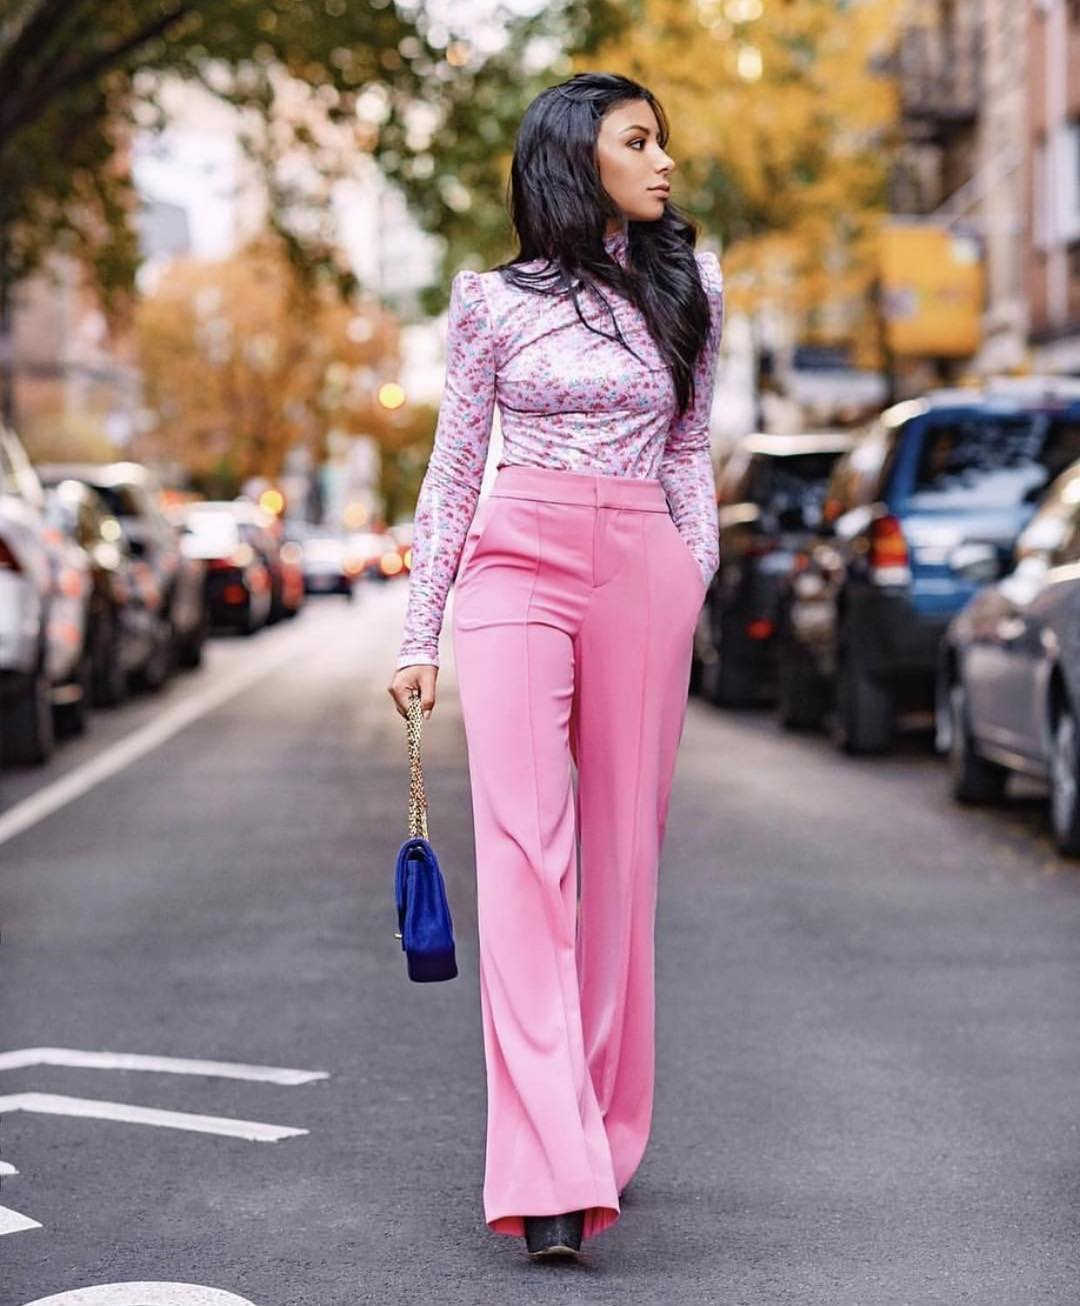 Floral Puff Sleeve Top And High Rise Pants In Pink For Elegant Street Walks 2021